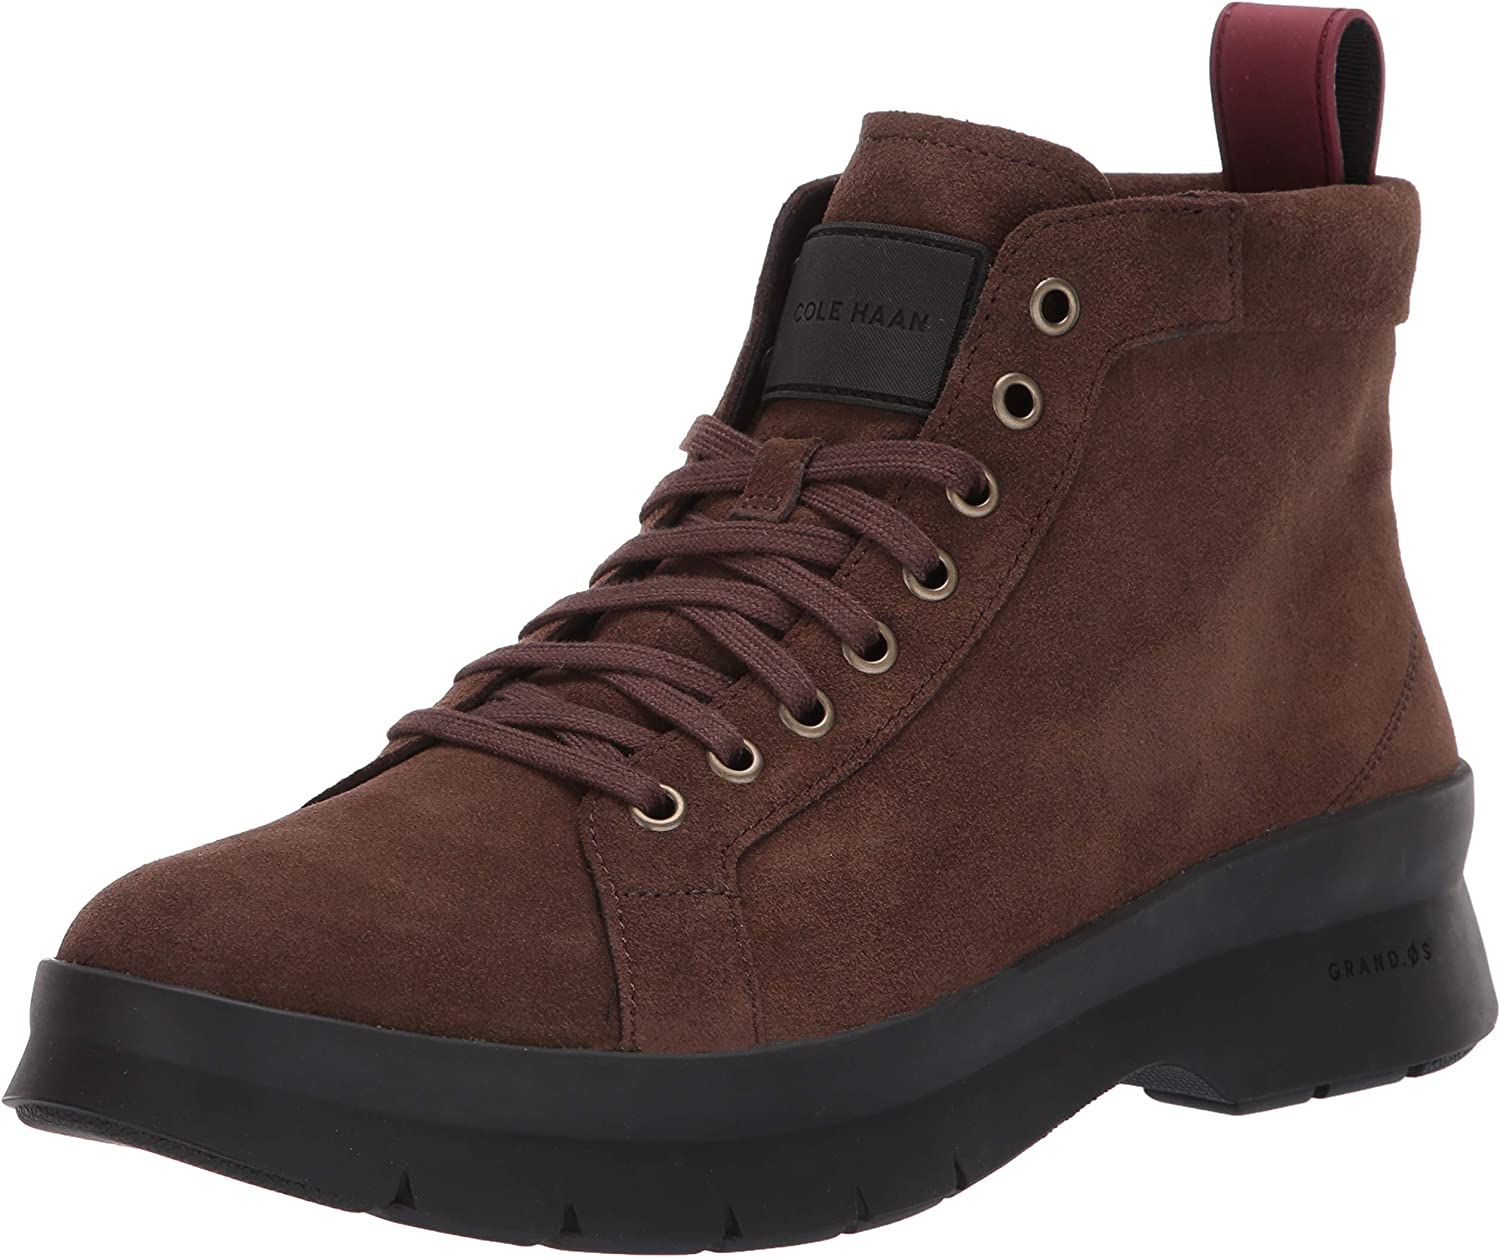 Cole Haan Men's Pinch Utility Chukka Boot Water Proof Fashion